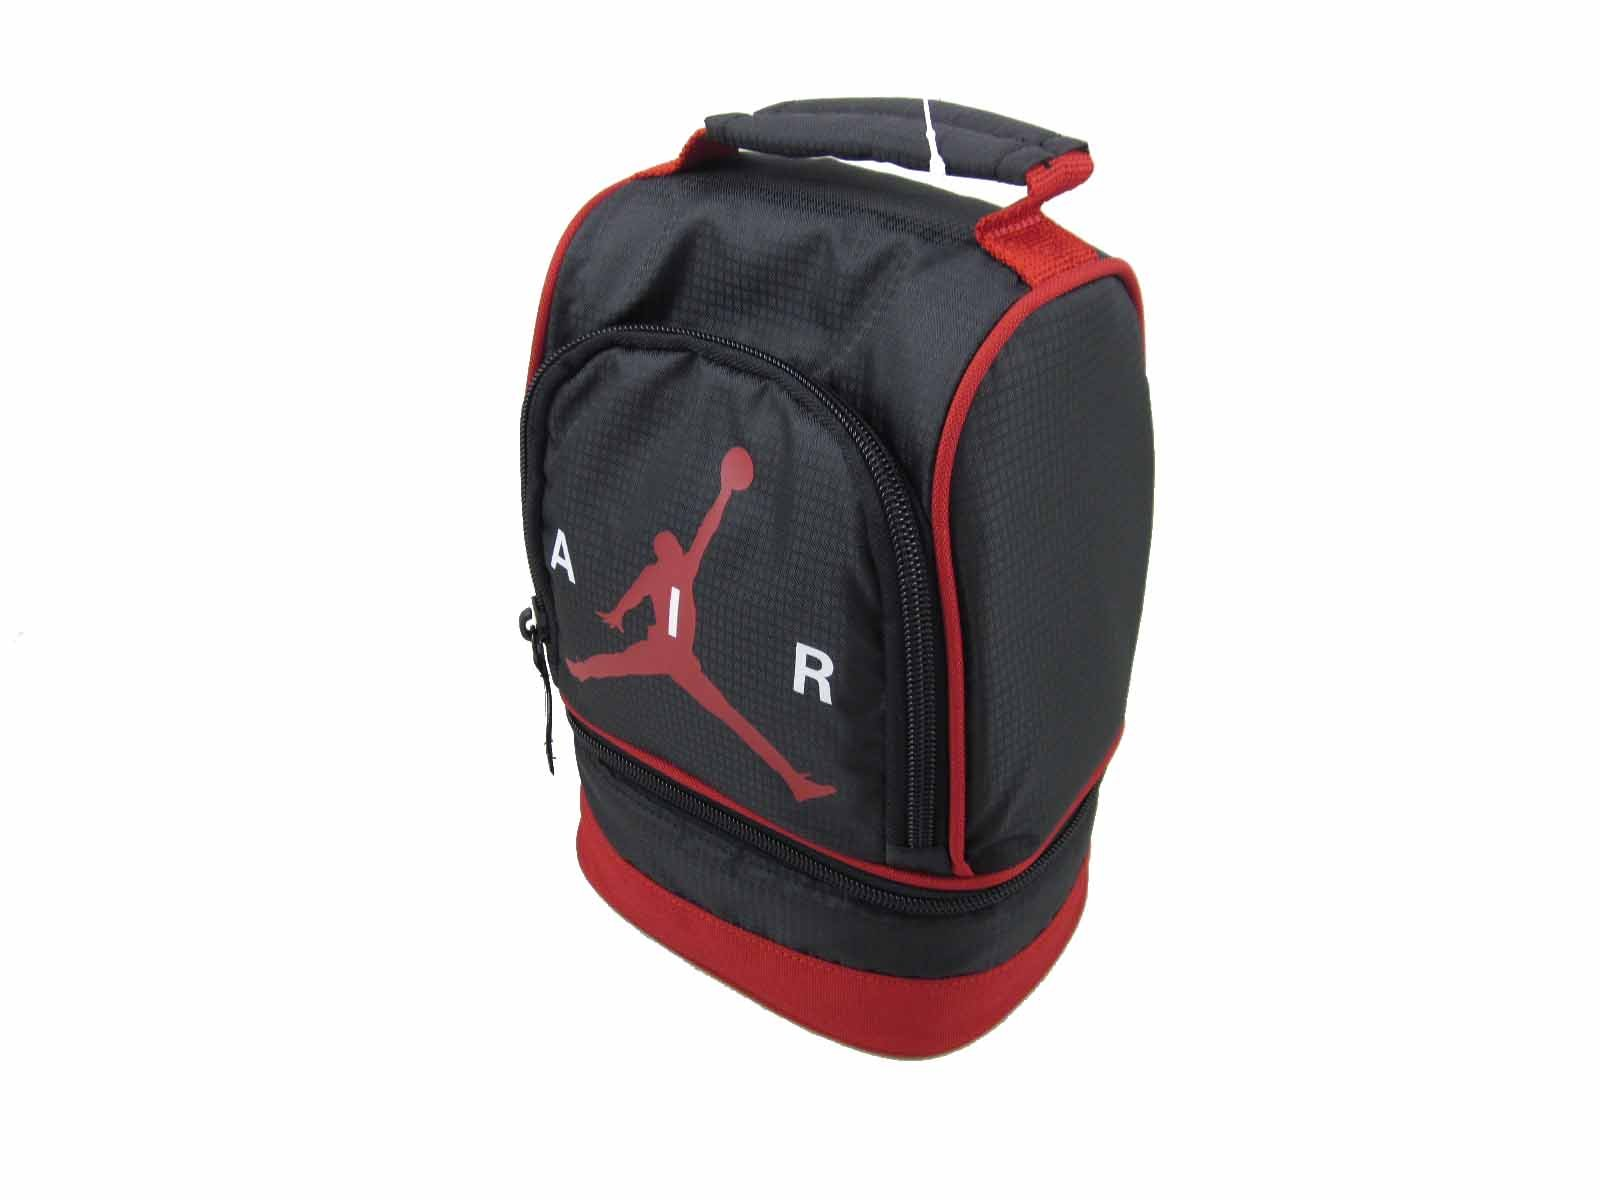 e6884bbb650f Get Quotations · Air Jordan Insulated Standing Lunch Bag with Carry Handle